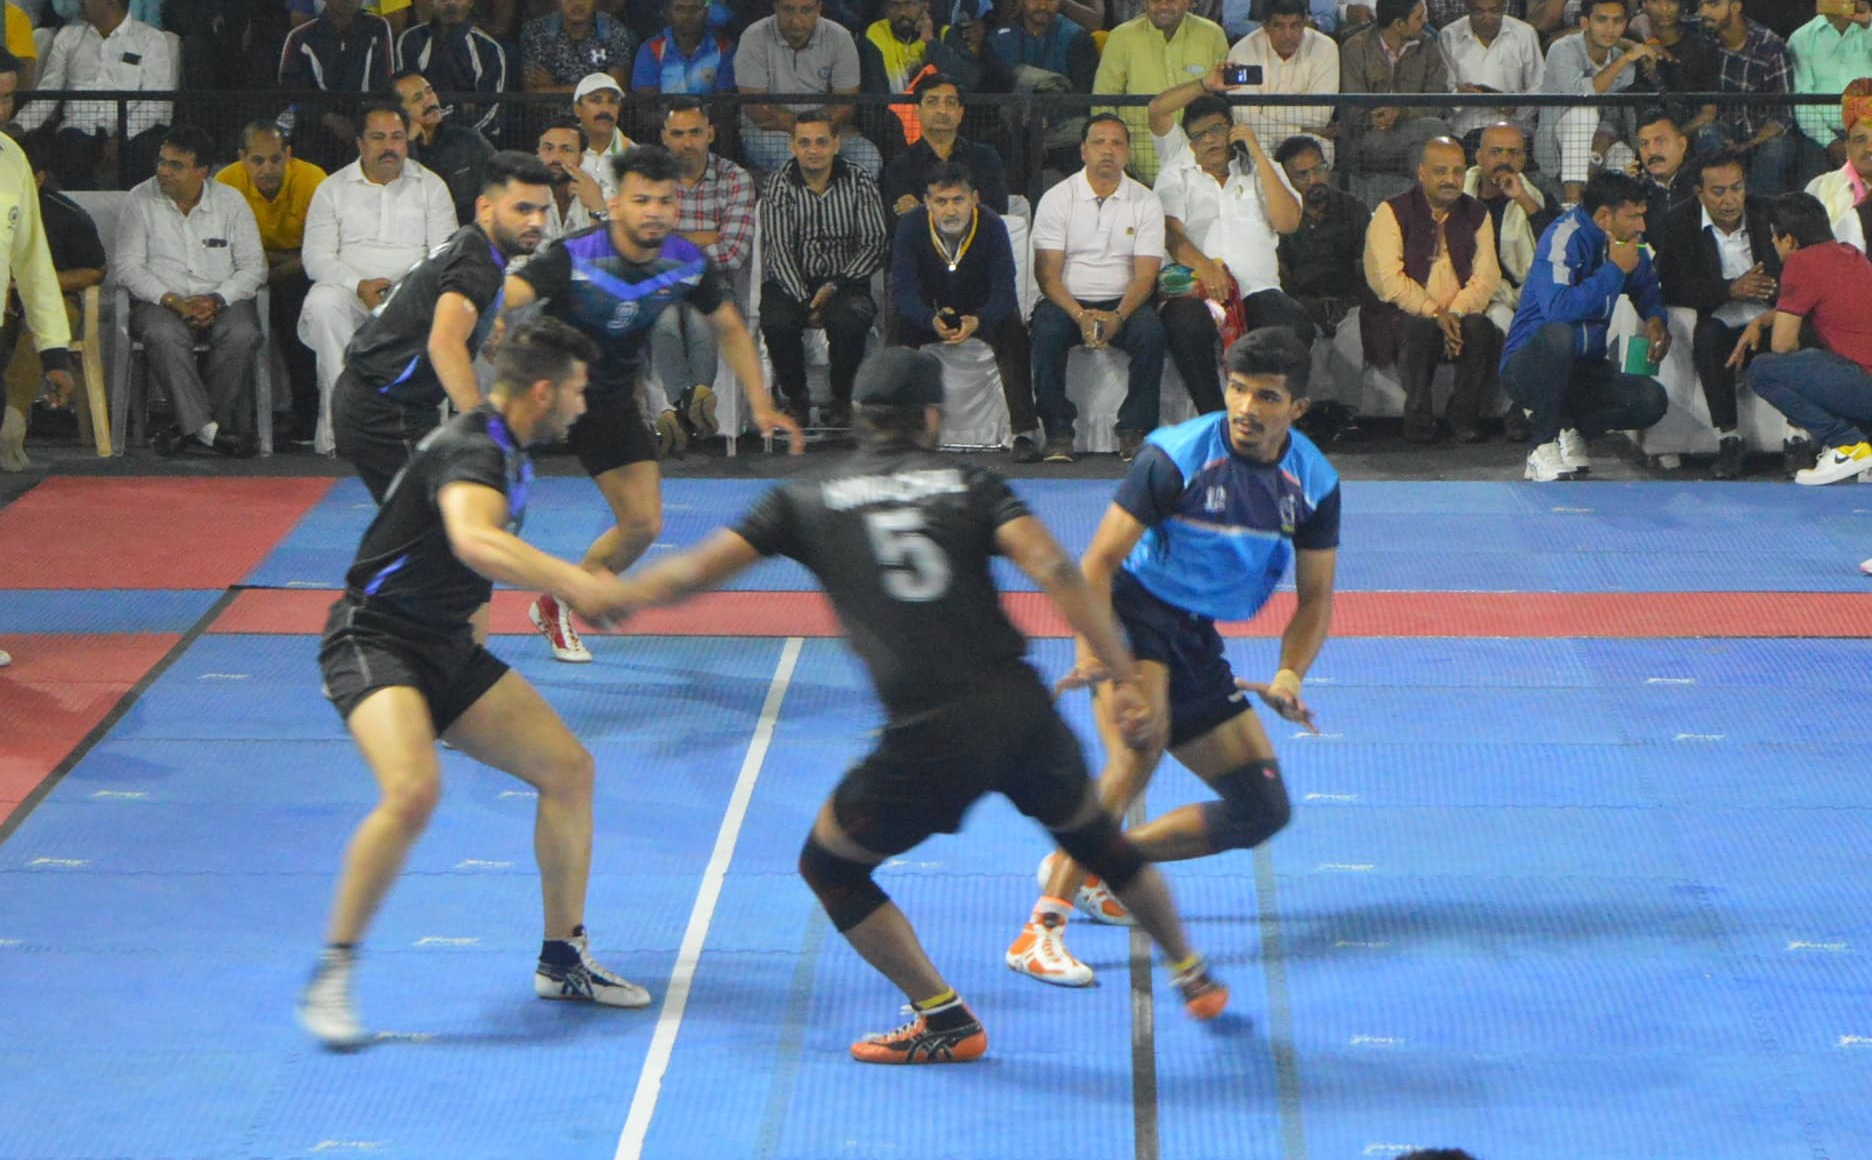 Pankaj Mohite at 67th Senior Nationals against Himachal Pradesh